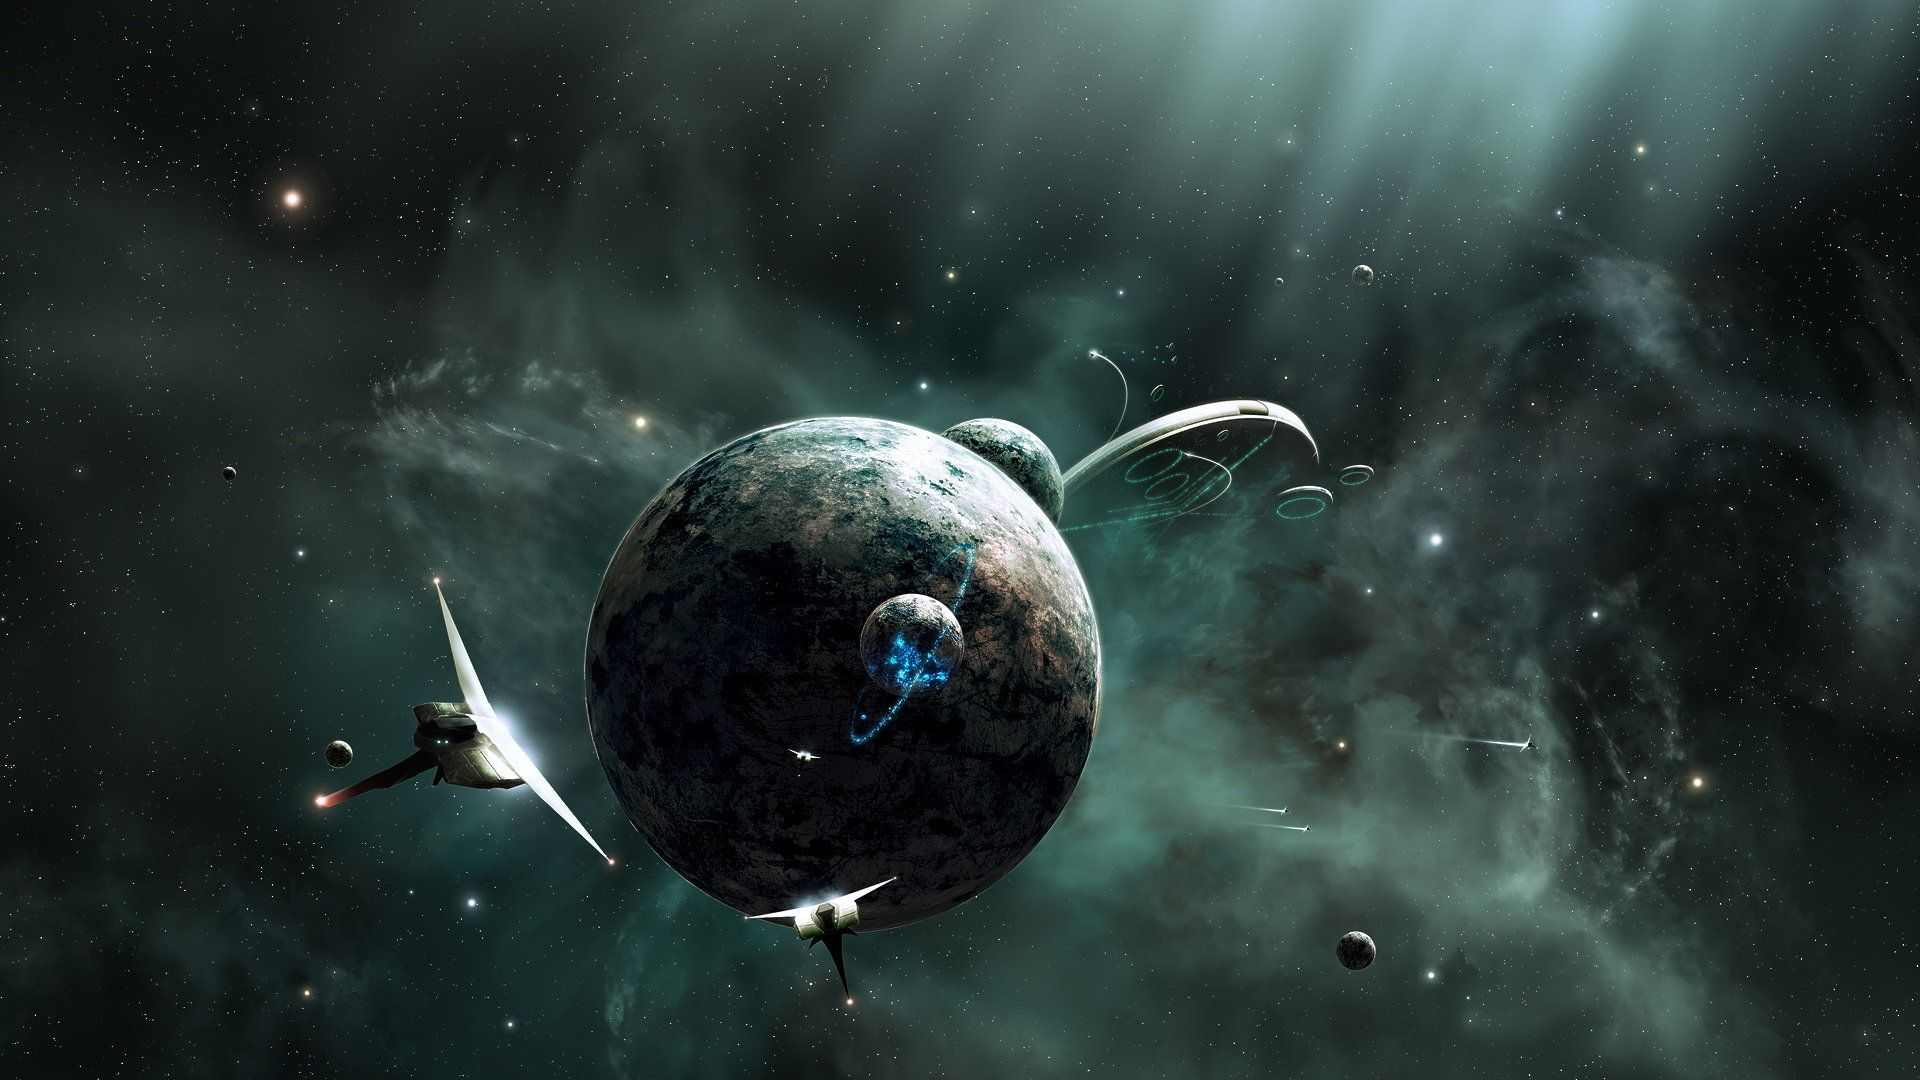 green planet wallpapers tagged black earth orbit planet | hd